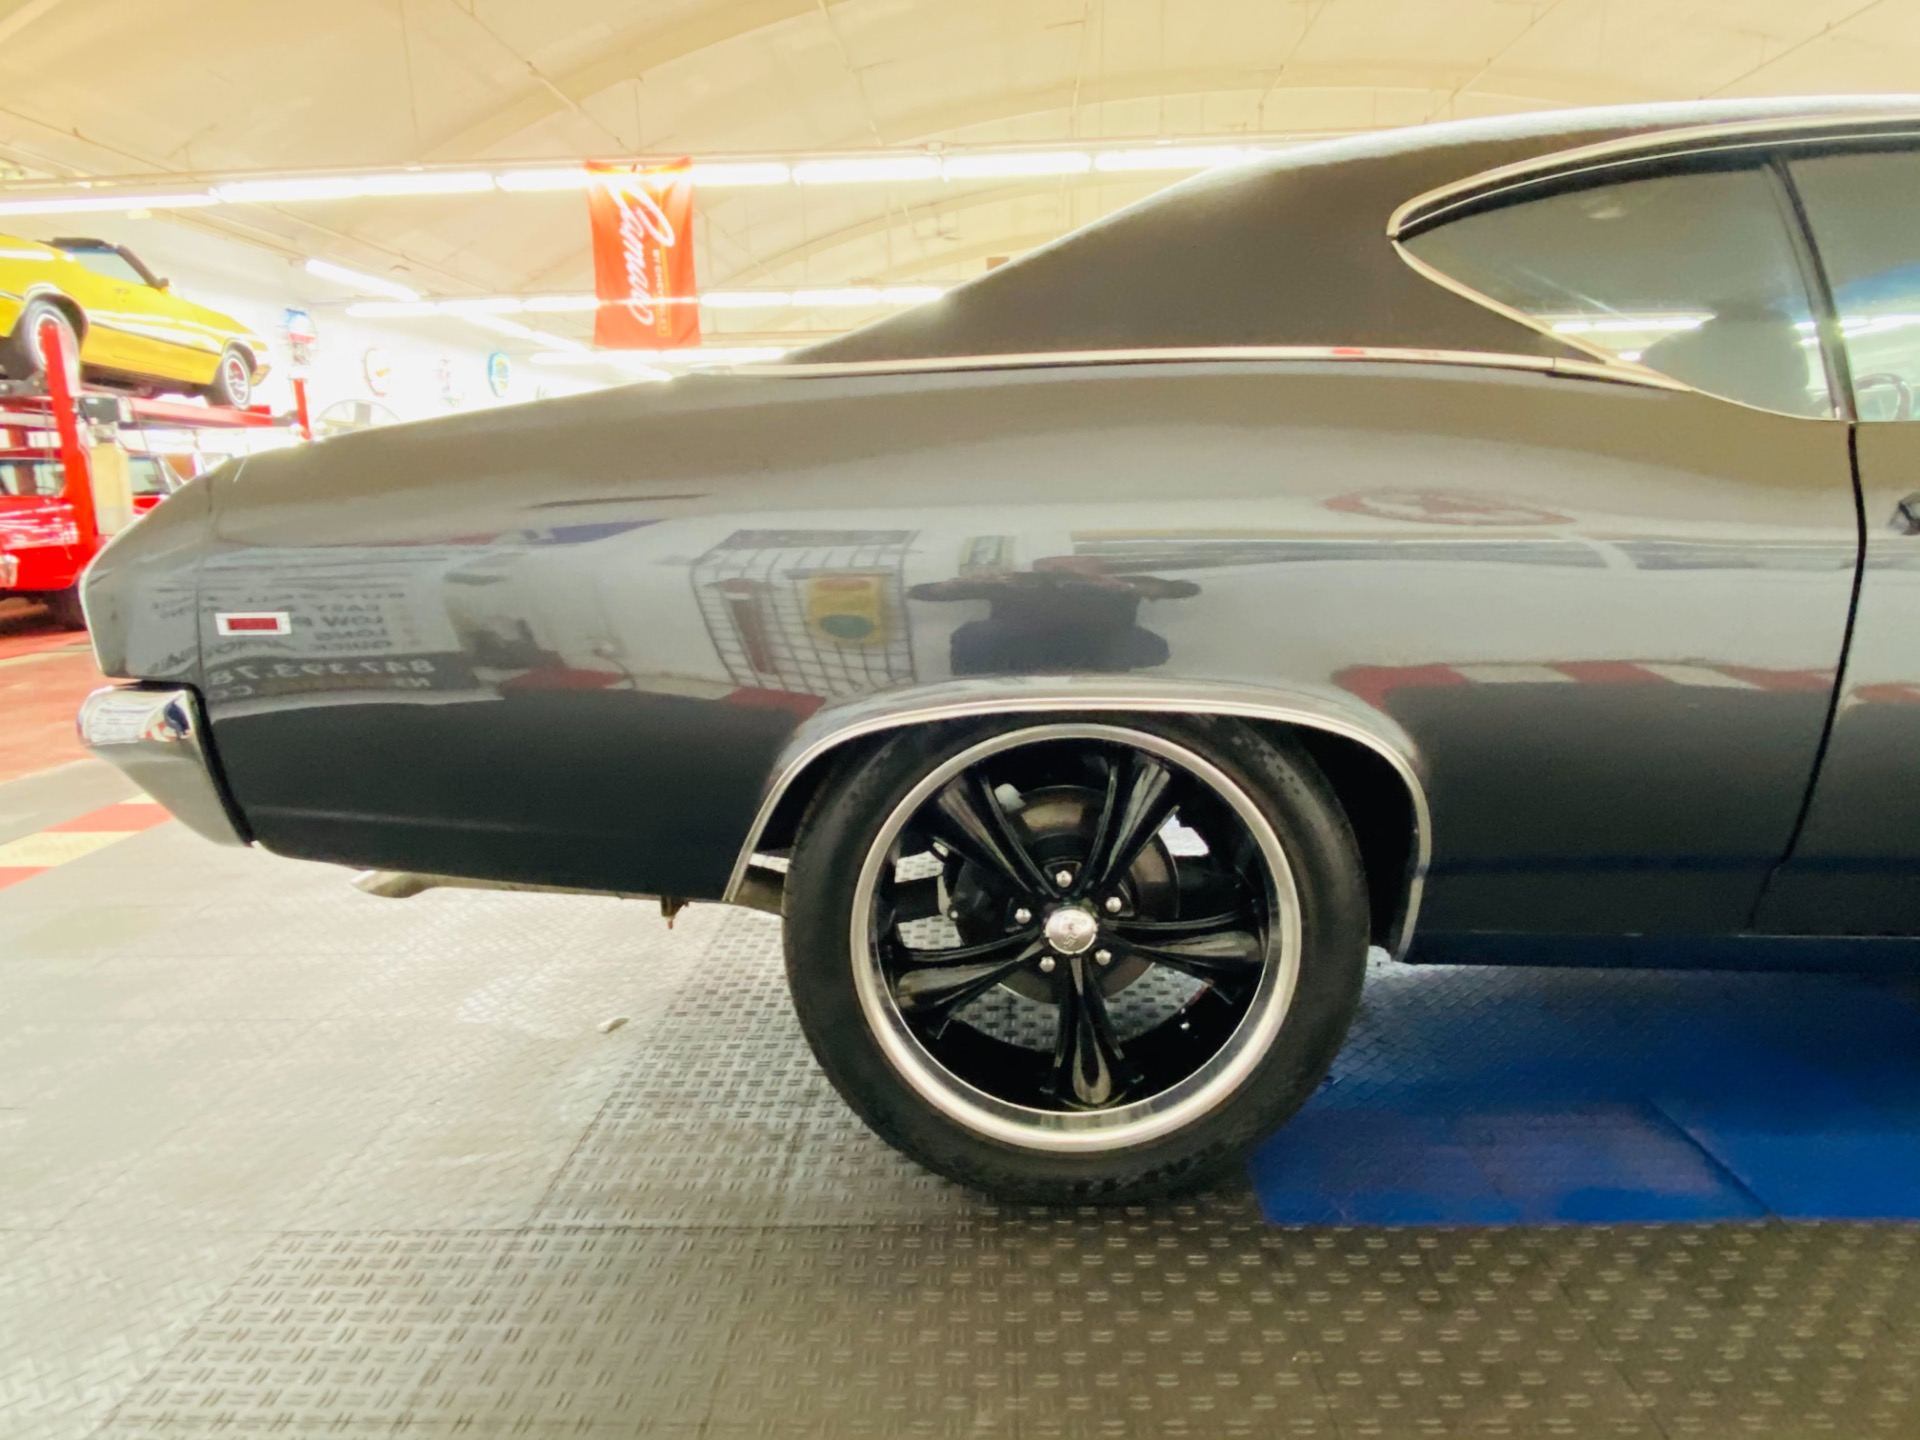 Used 1969 Chevrolet Chevelle - FRAME OFF RESTO MOD - 454 ENGINE - VINTAGE AIR - SEE VIDEO - | Mundelein, IL